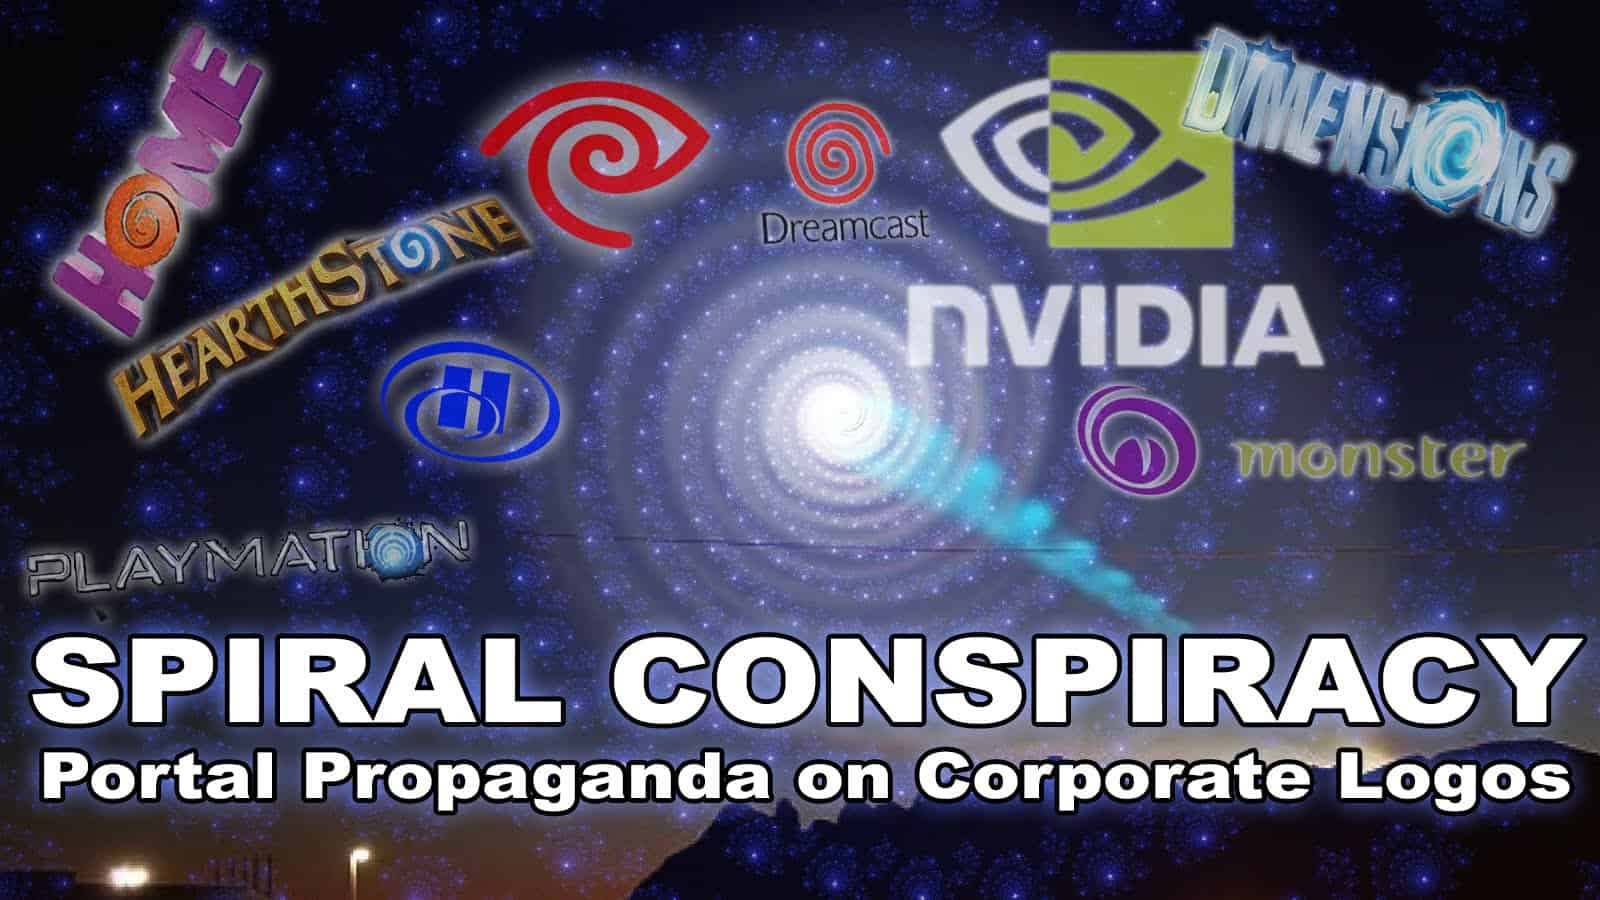 SPIRAL CONSPIRACY: Portal Propaganda on Corporate Logos